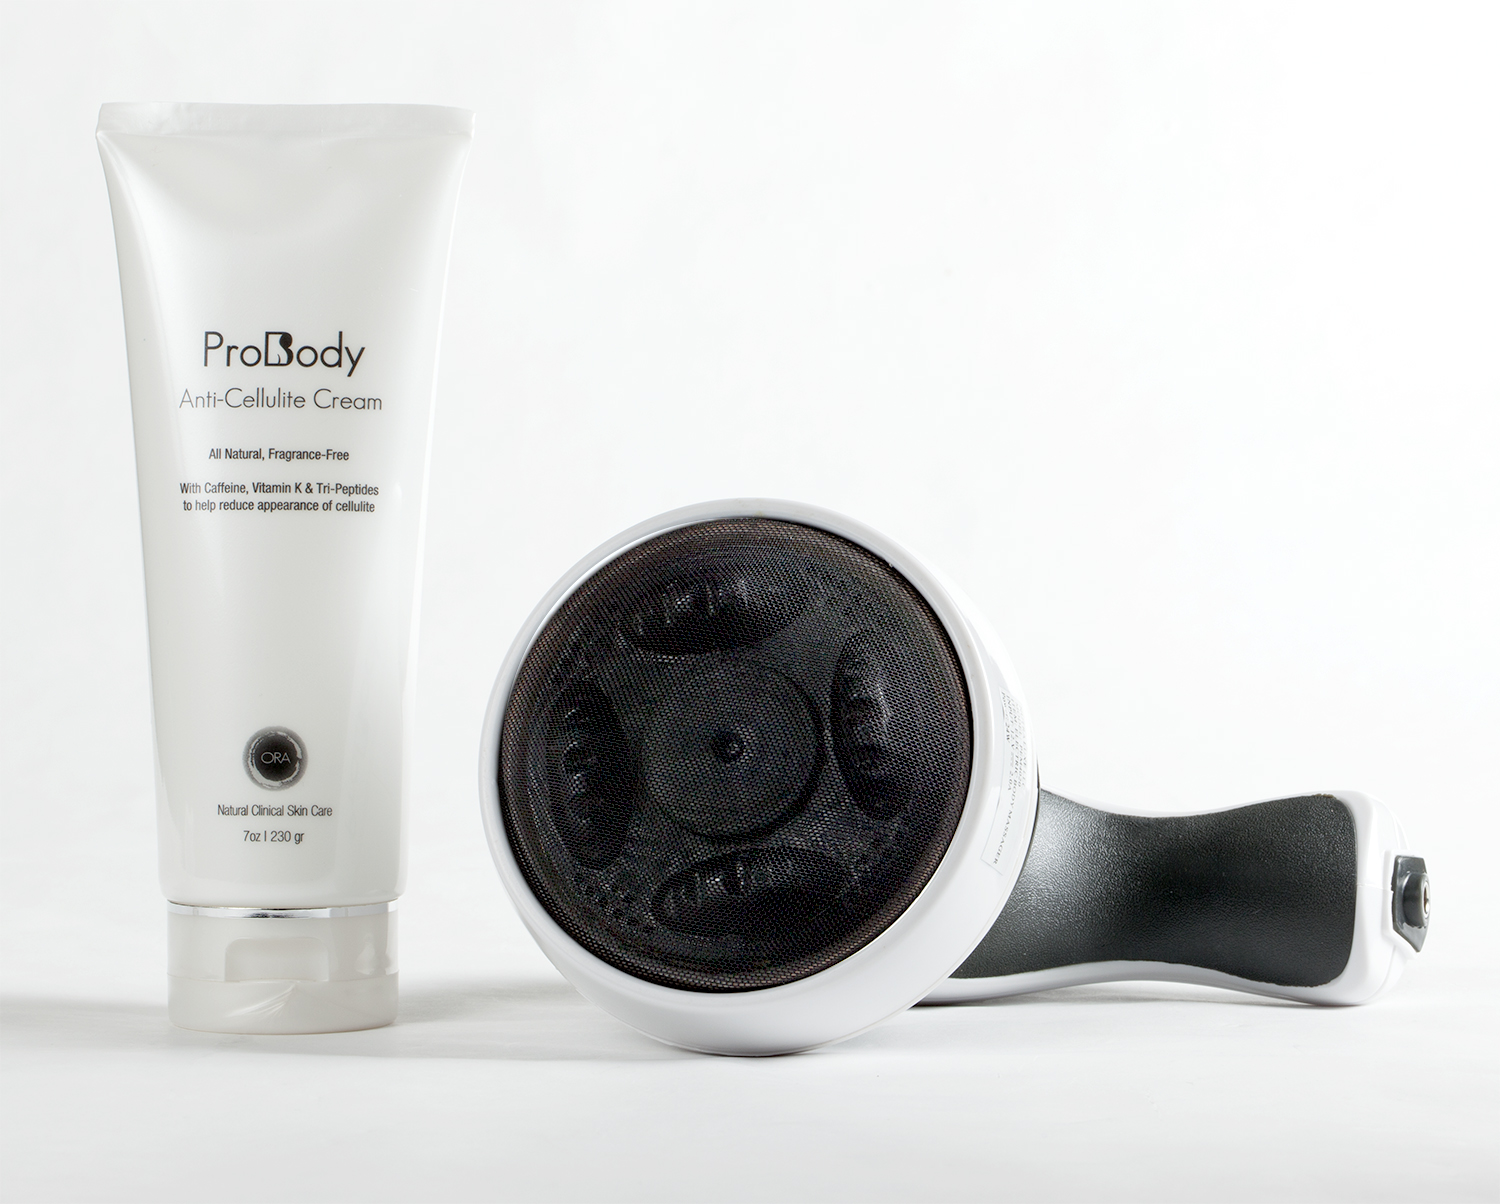 ProBody Slim & Shape Anti-Cellulite Massager System (w/ FREE 7 oz Anti-Cellulite Cream - $49 Value)